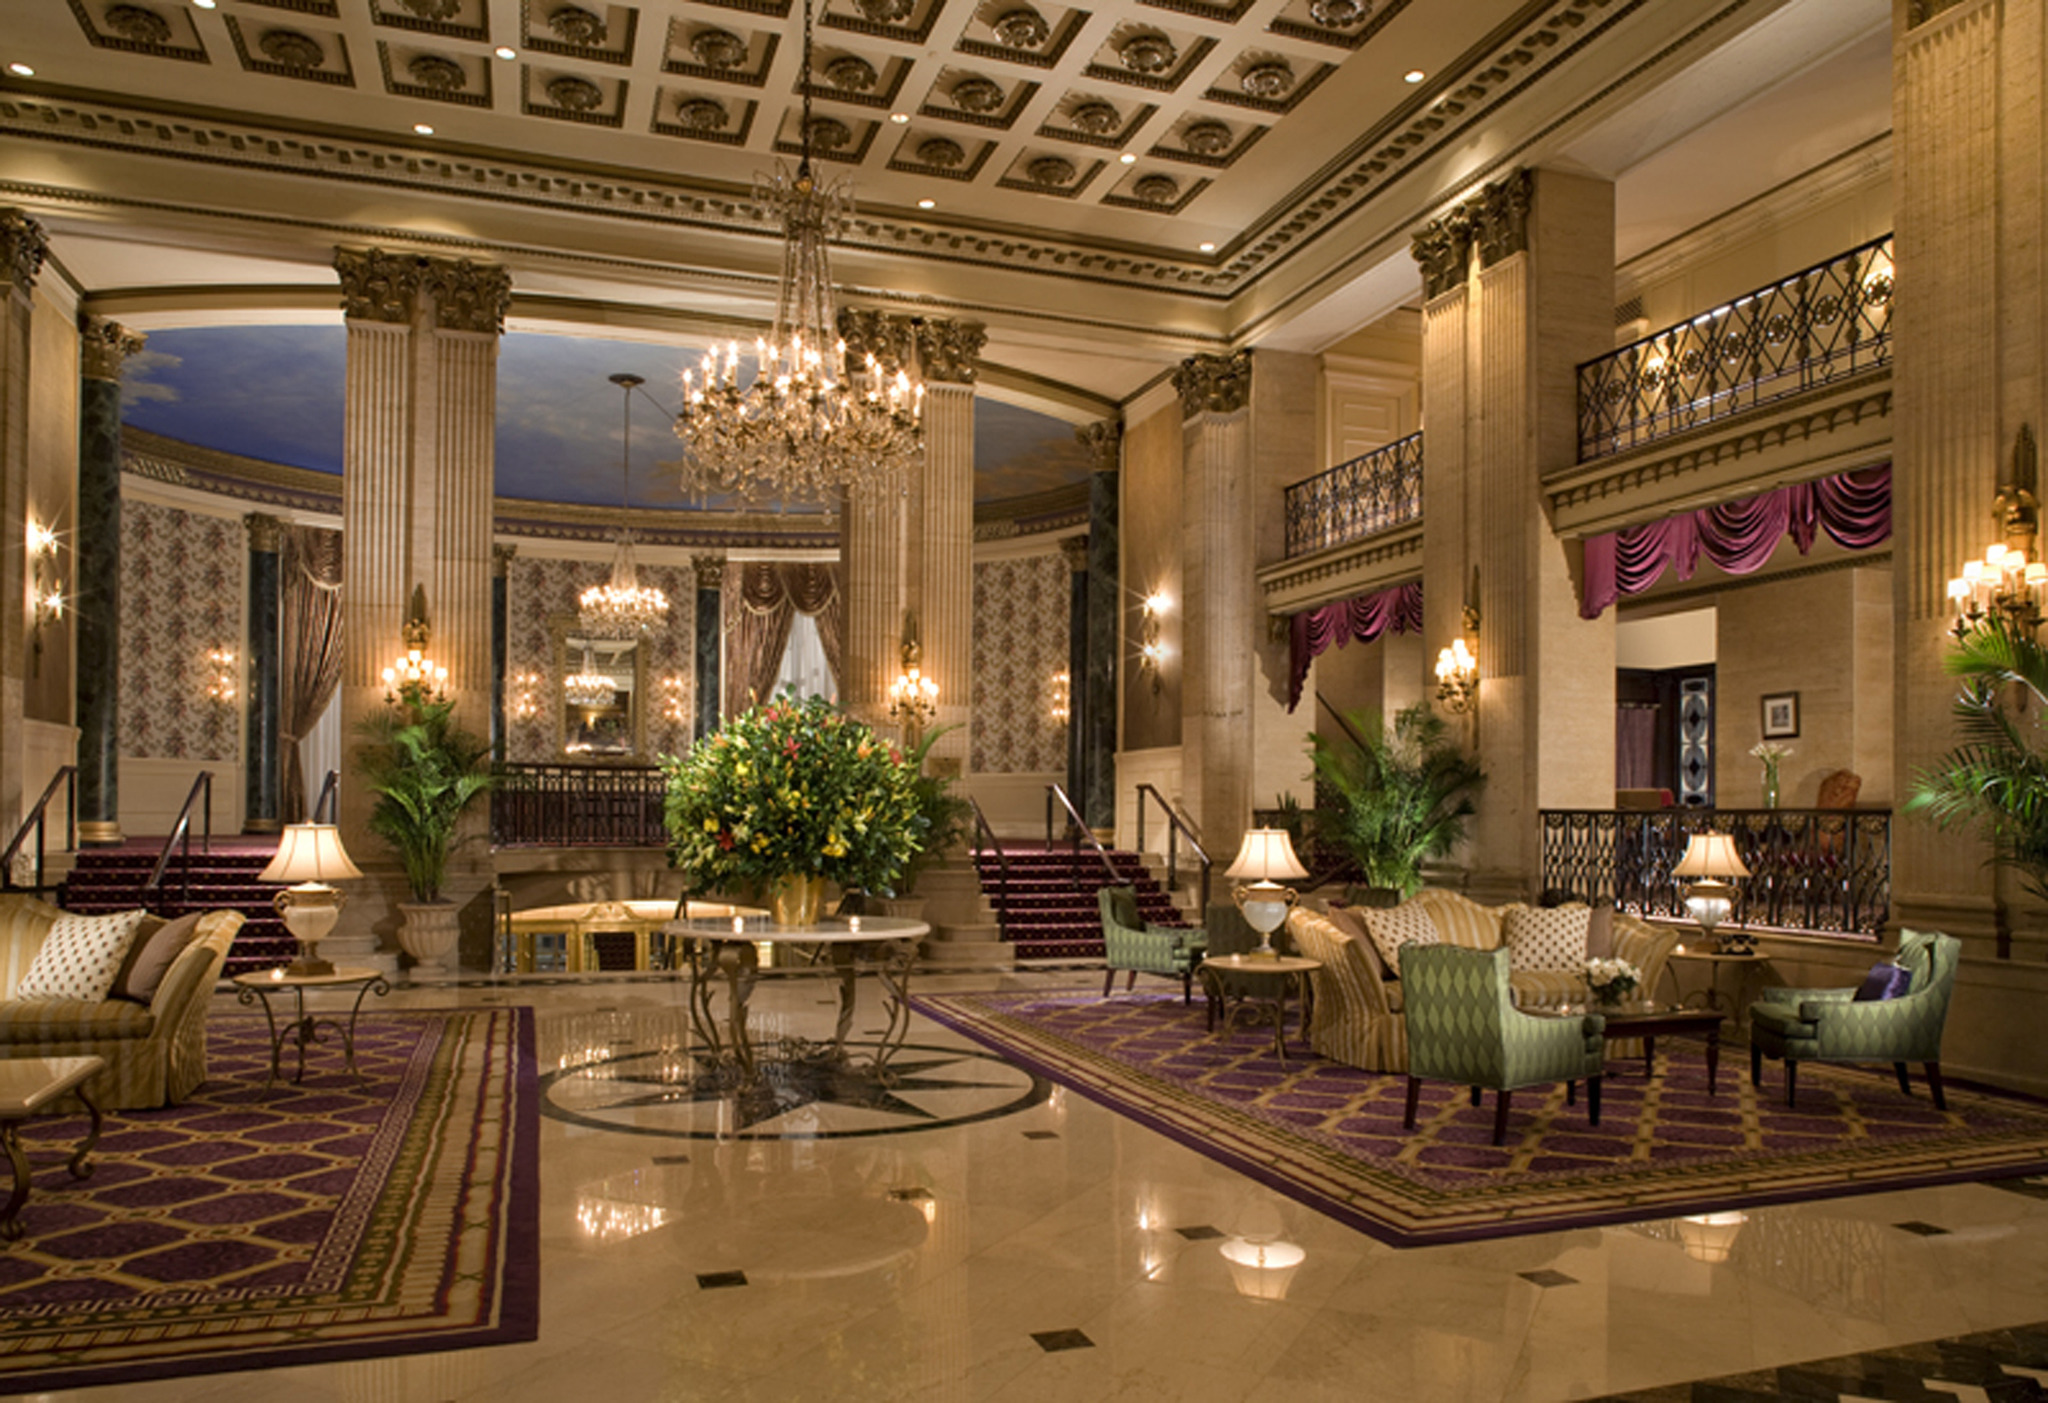 The best hotels near Grand Central Terminal